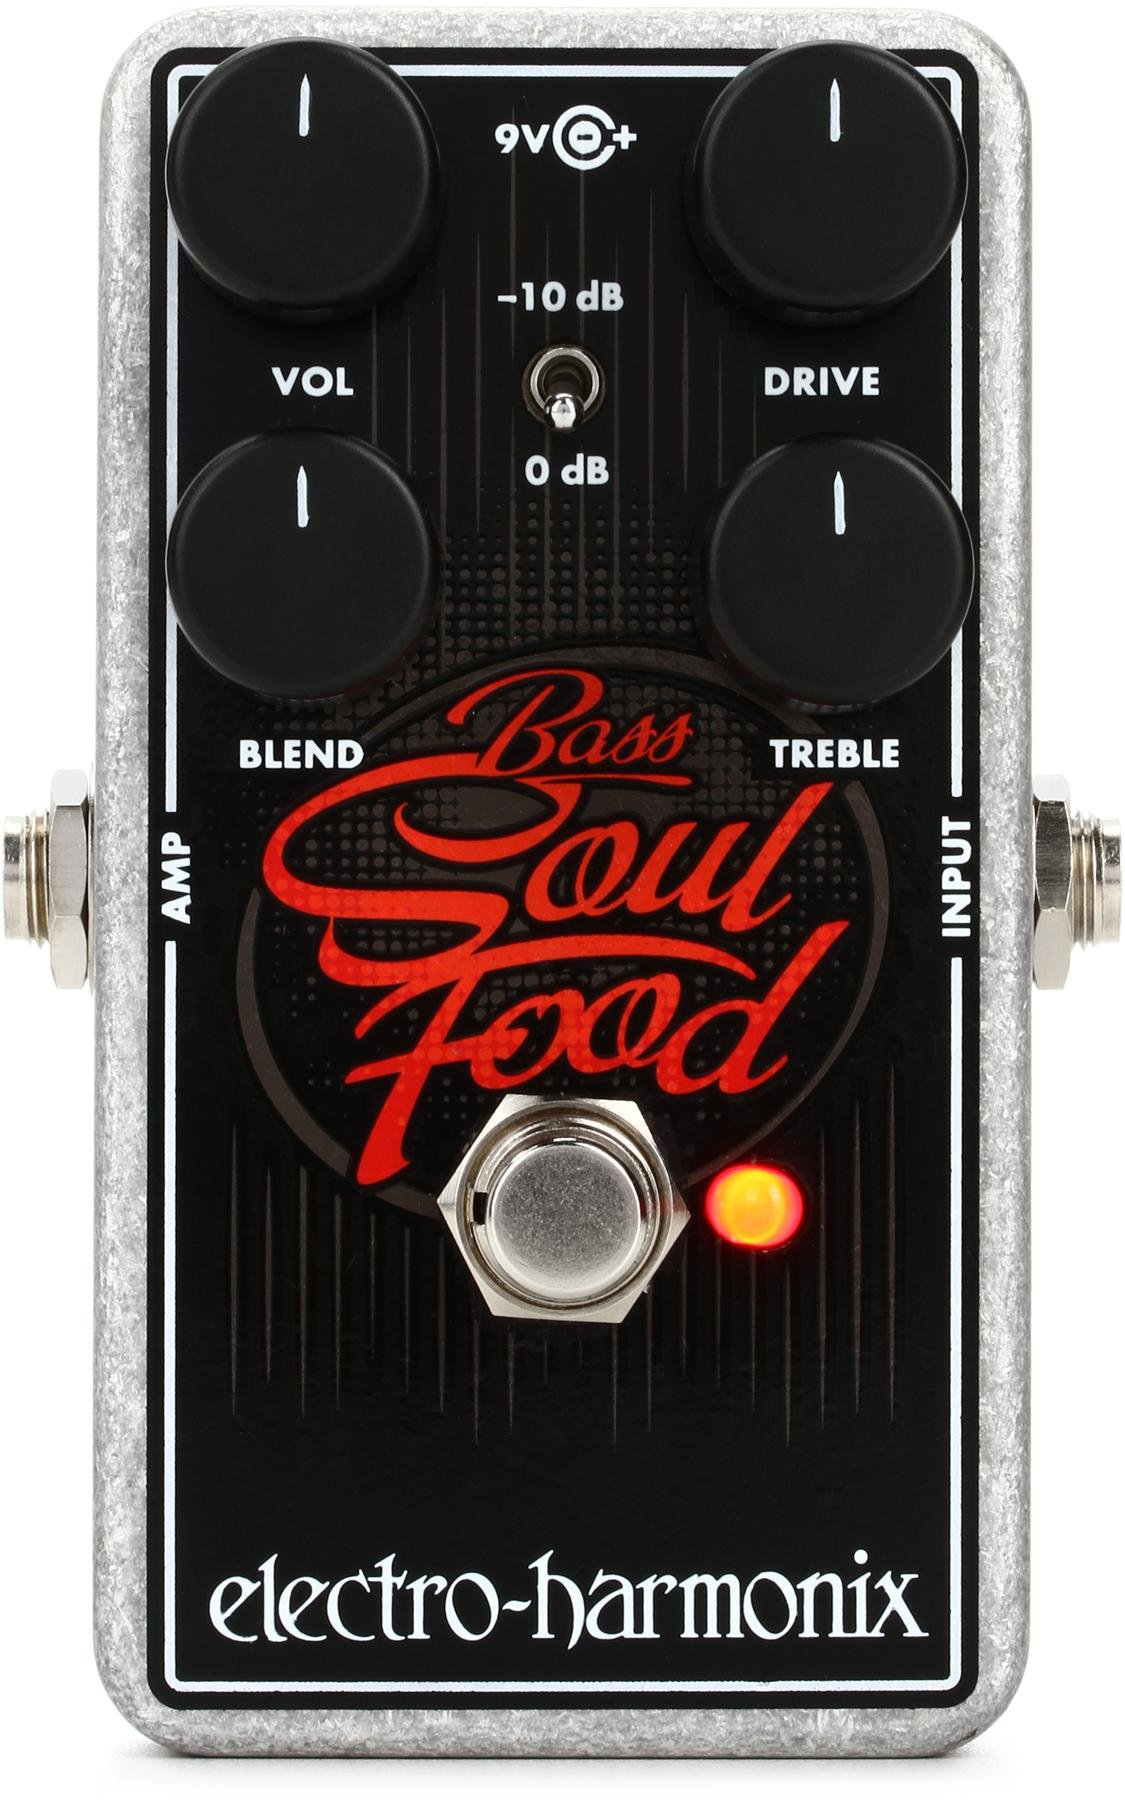 Electro Harmonix Bass Big Muff Pi Fuzz Pedal Sweetwater Box Distortion 8211 Guitar Effect Soul Food Transparent Overdrive